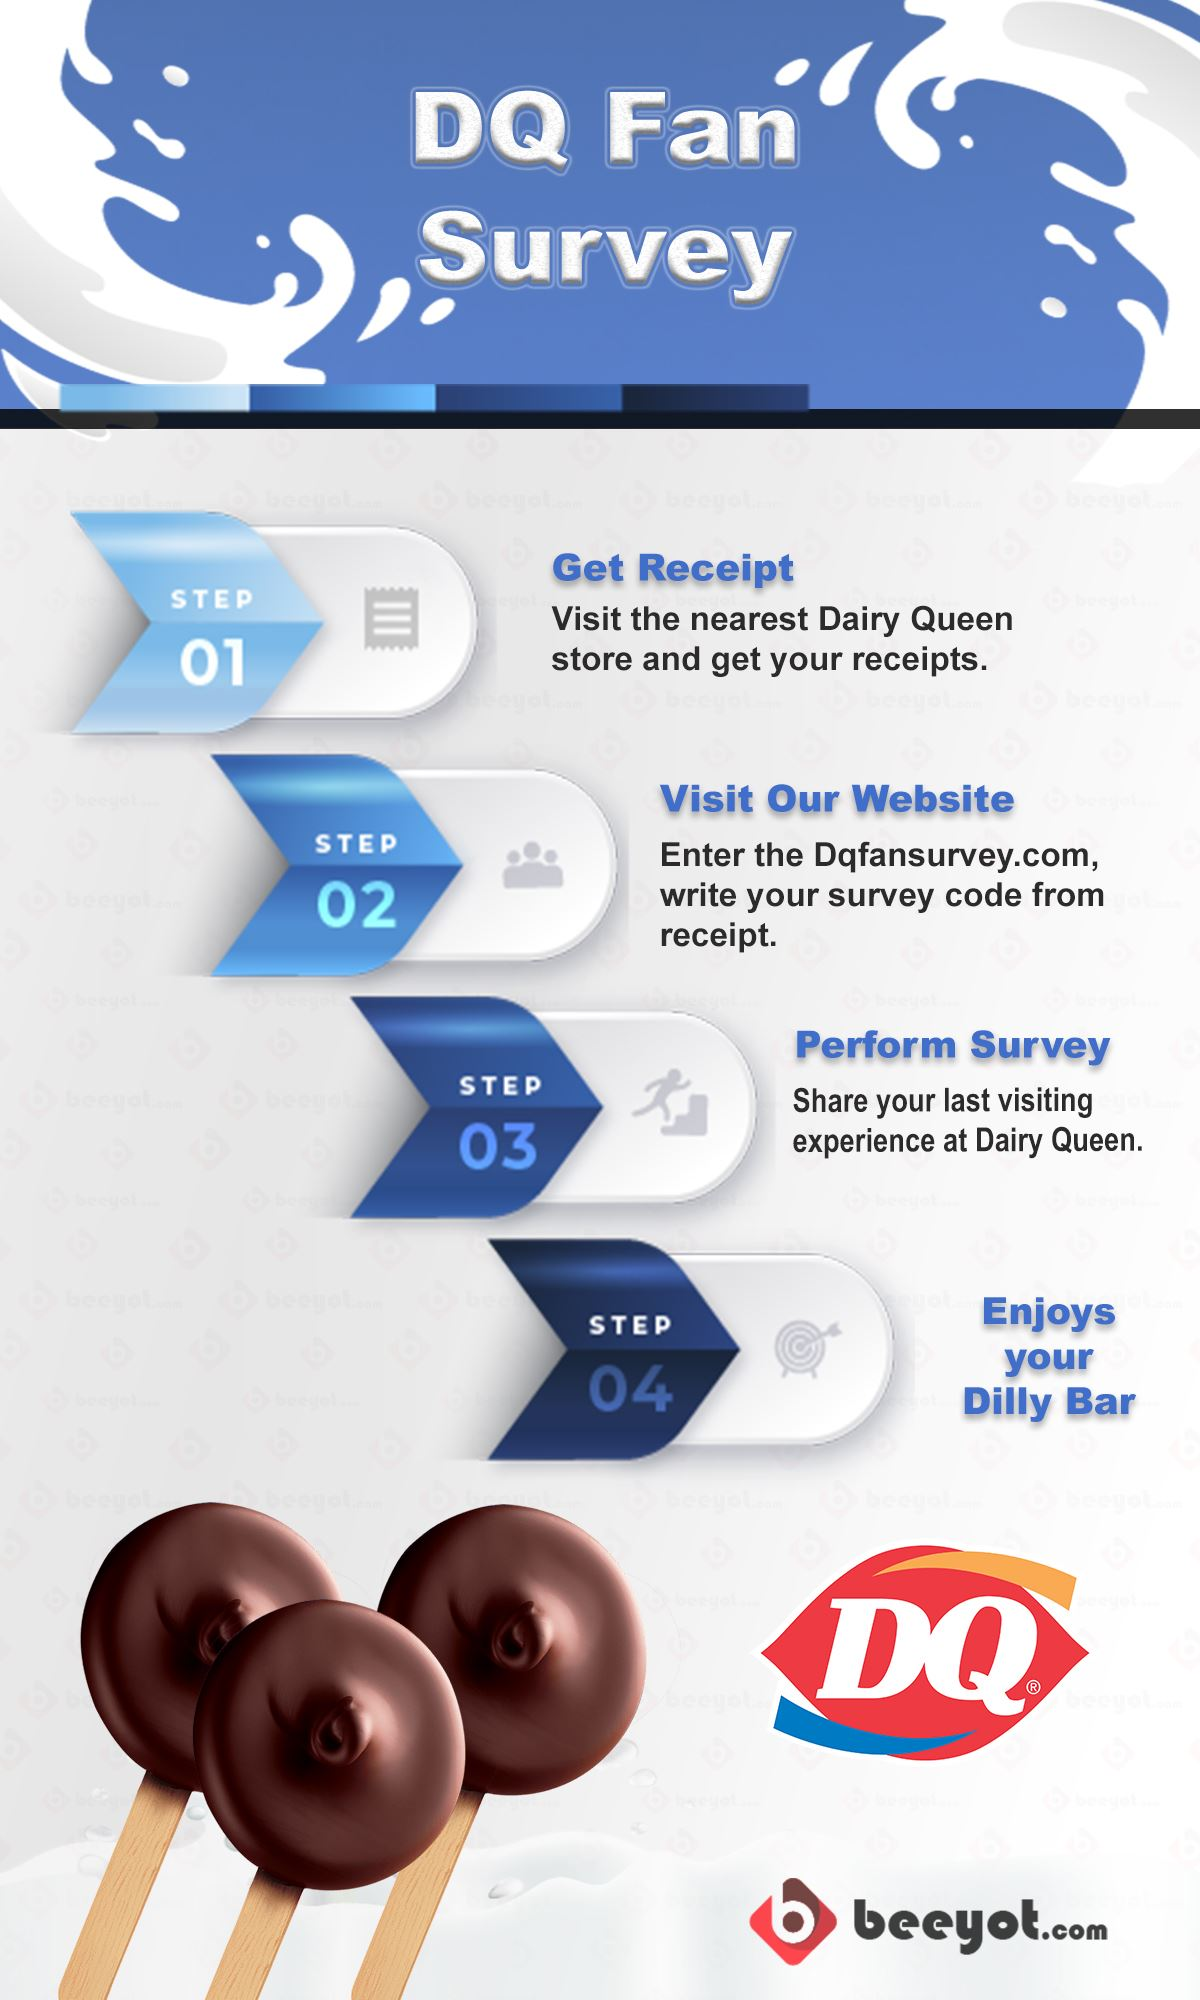 Dqfansurvey.com Guide Steps